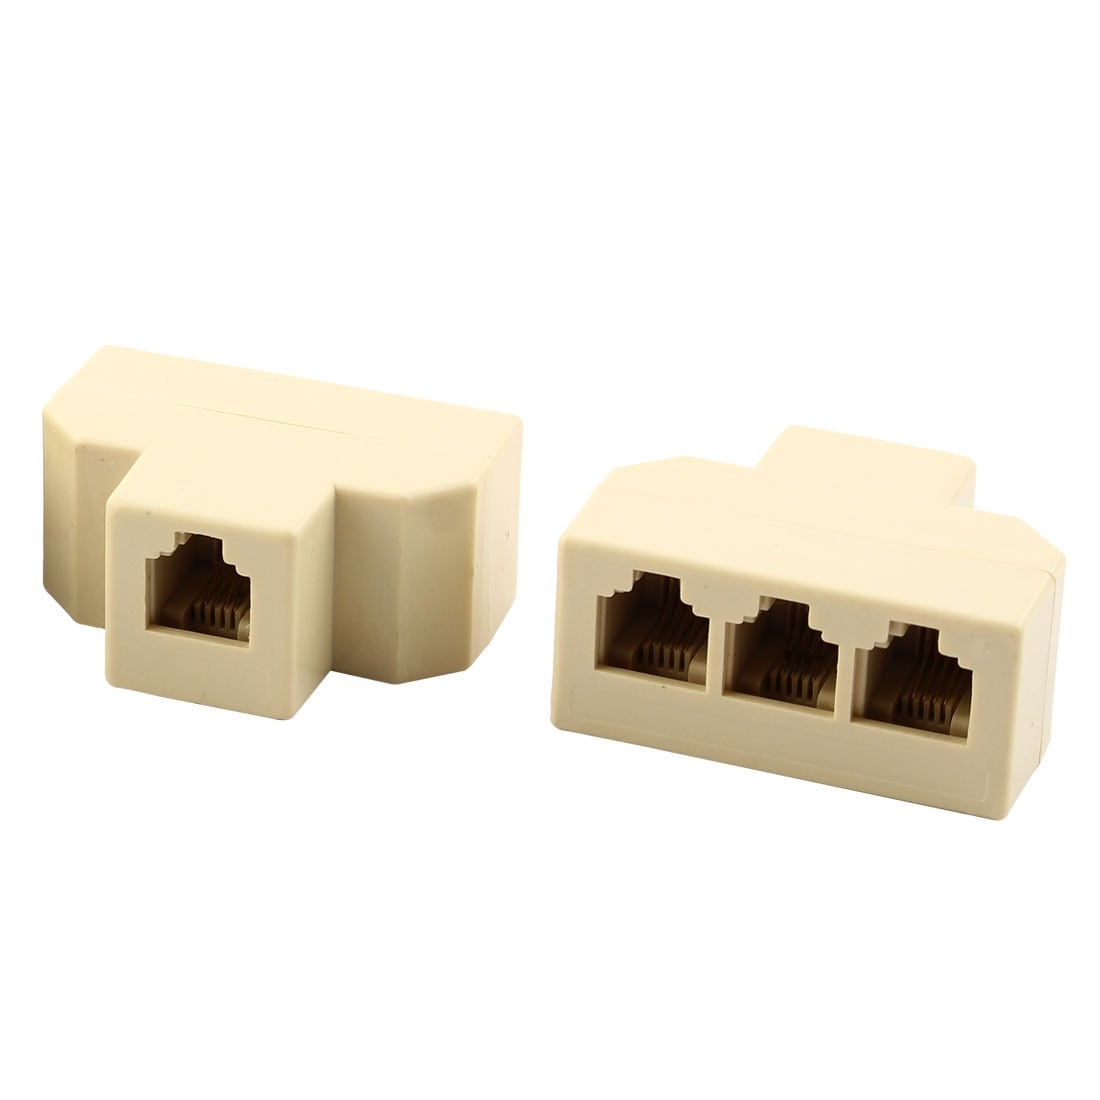 Shop Plastic Rj11 1 To 3 Female Telephone Cable Line Ethernet How Wire Phone On Socket Wiring Connections Connector Splitter 4pcs Free Shipping Orders Over 45 18444040